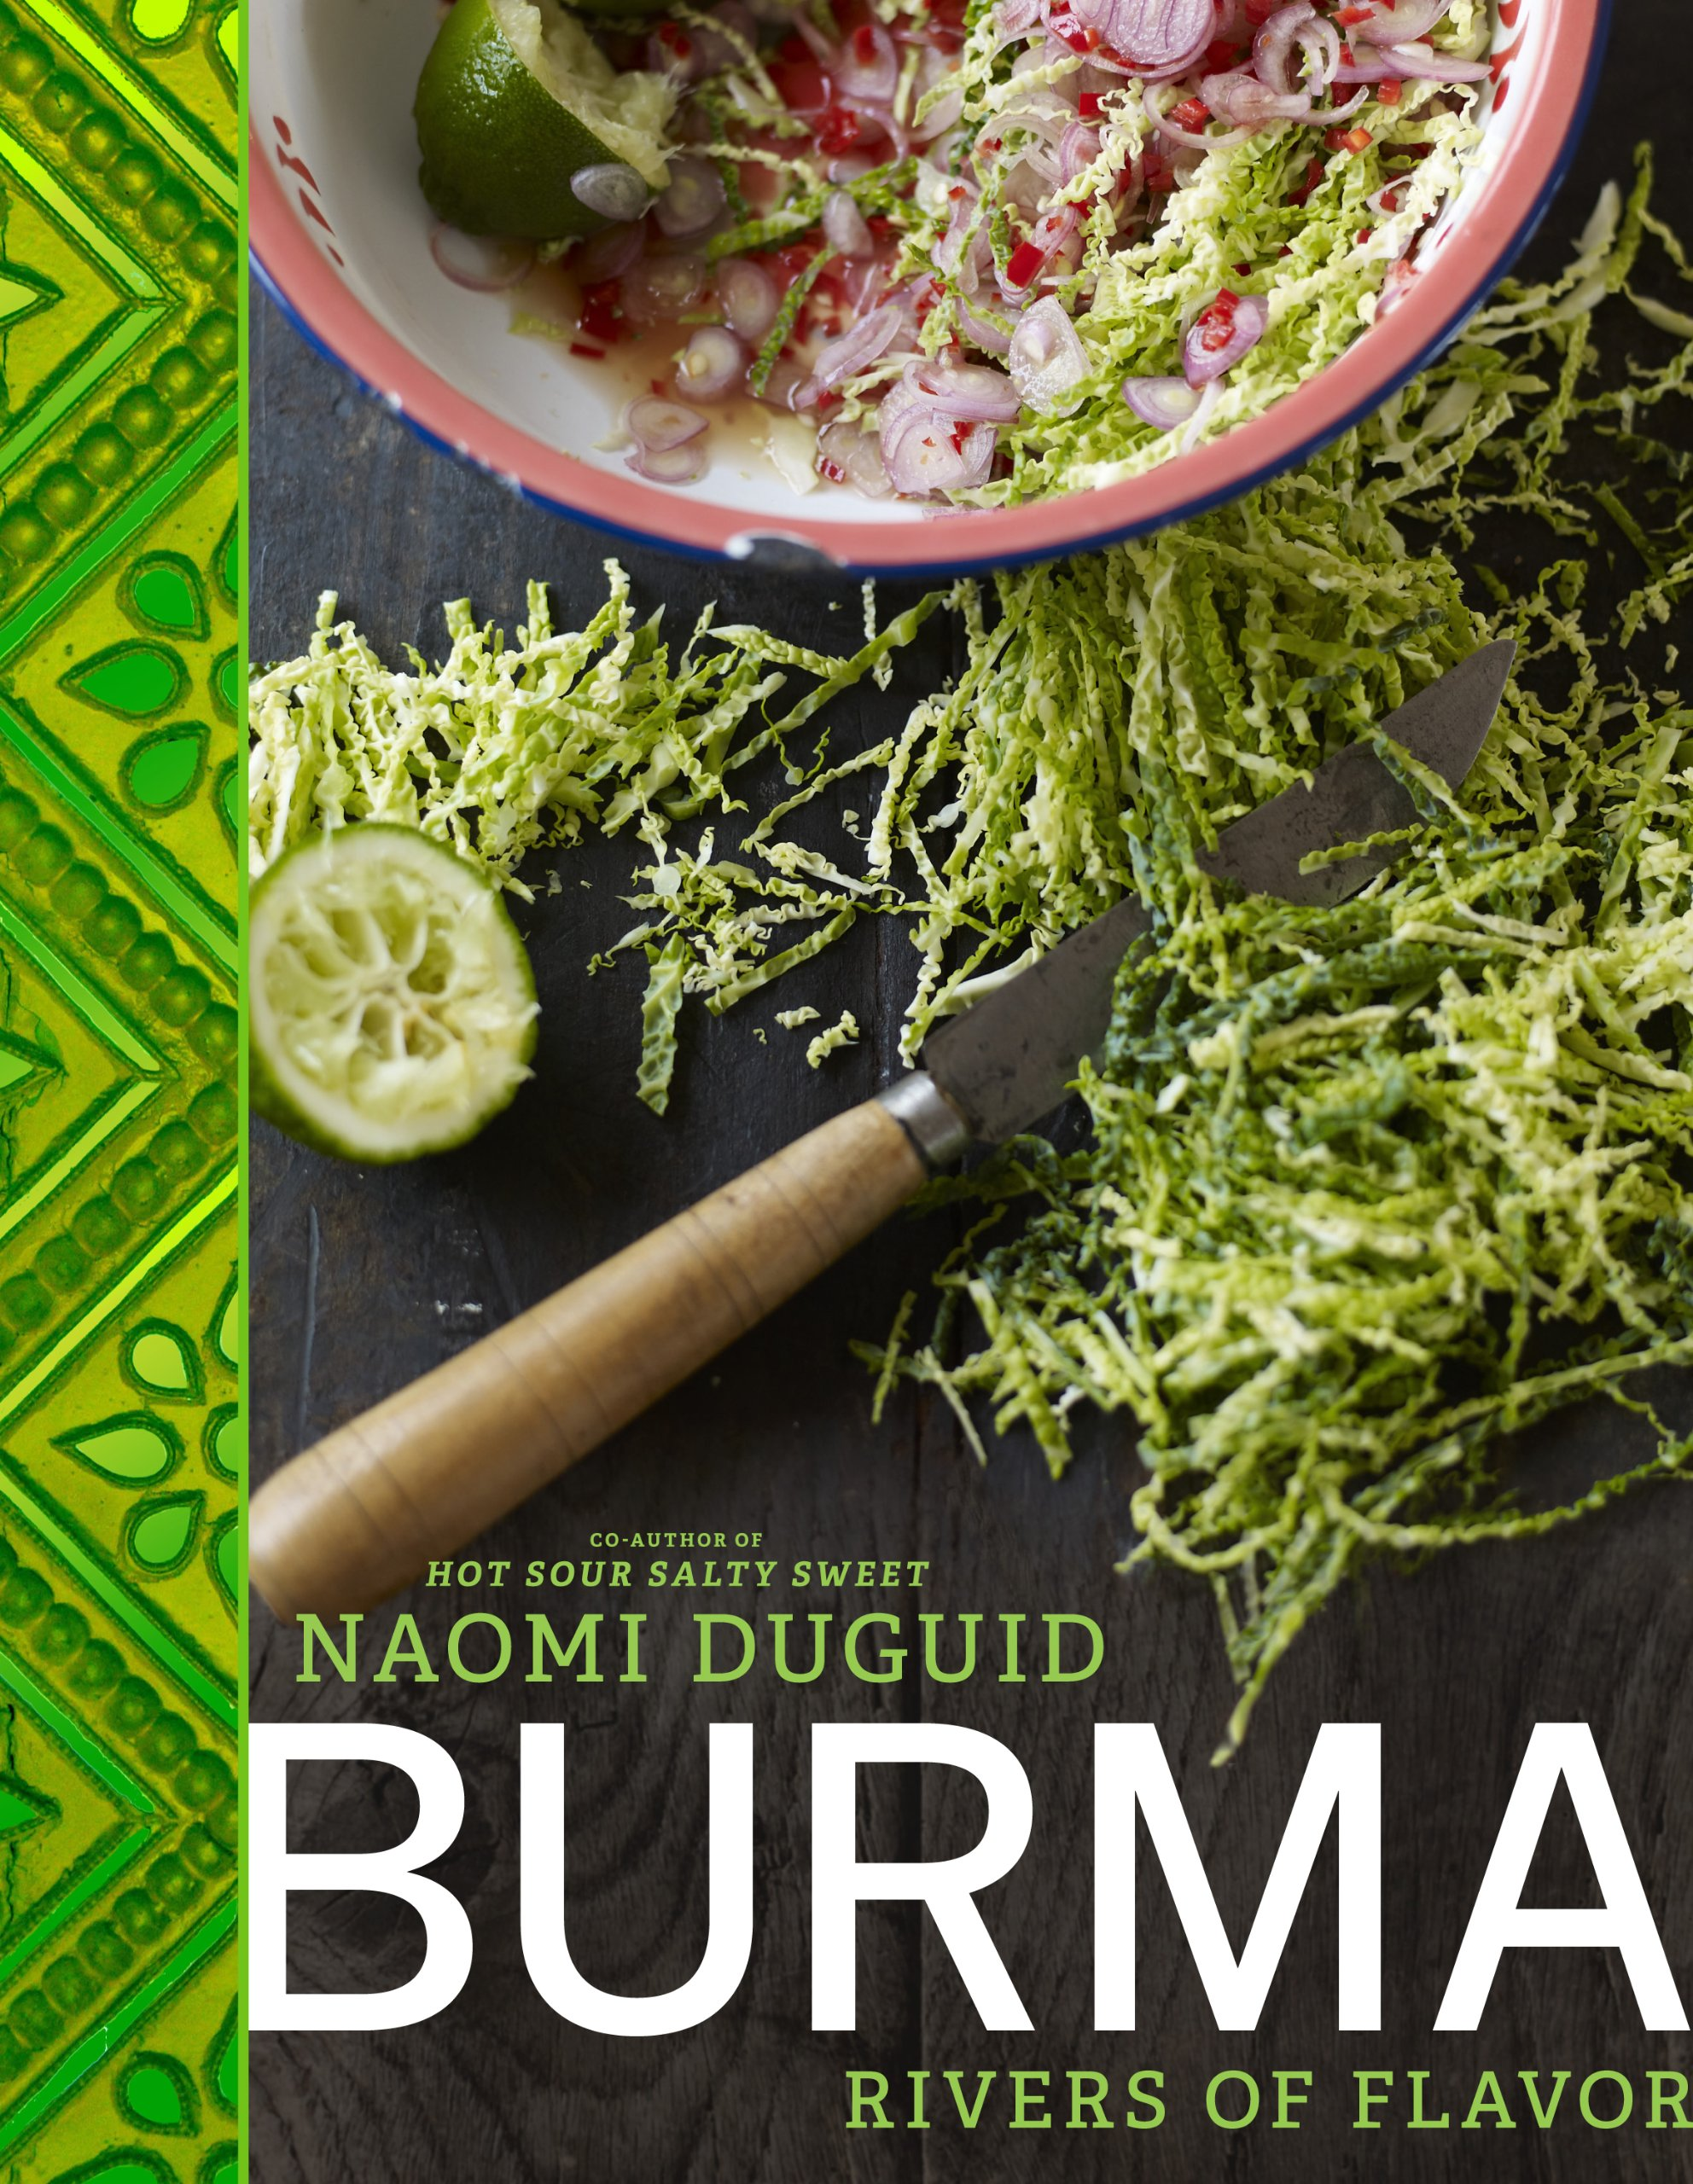 Burma rivers of flavor naomi duguid 9781579654139 amazon books forumfinder Images